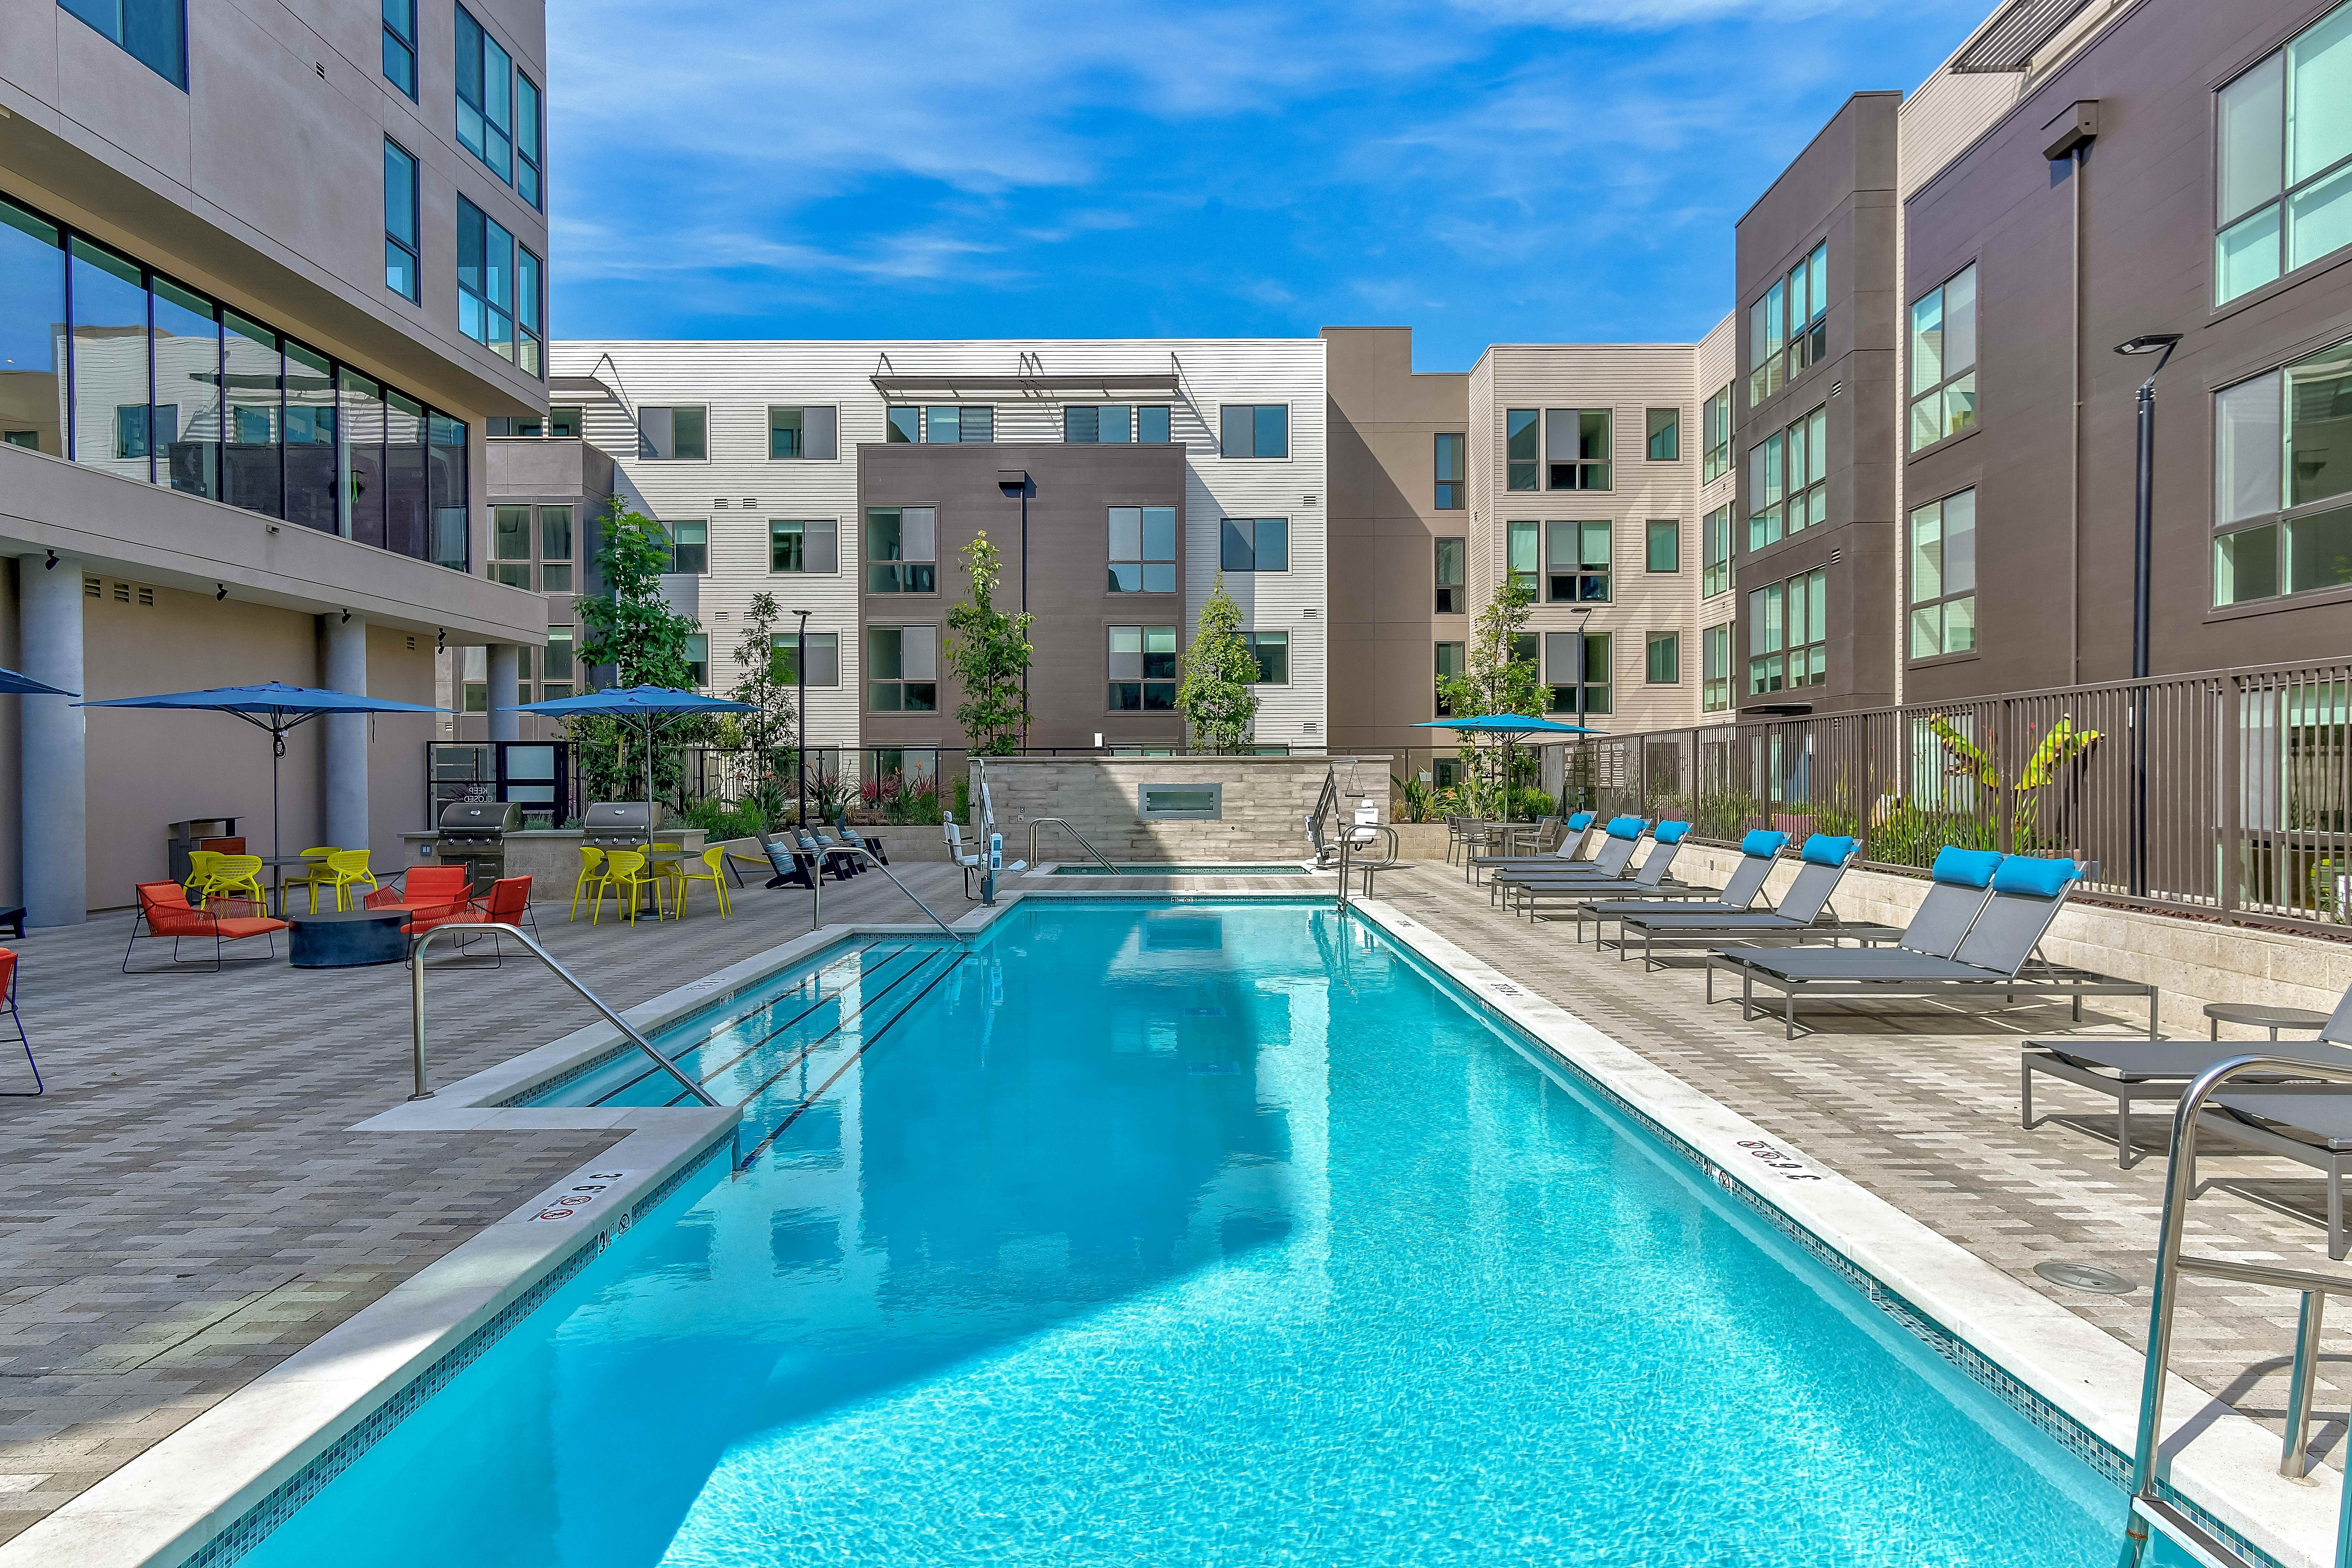 Apartments Near Stanford Novo for Stanford University Students in Stanford, CA